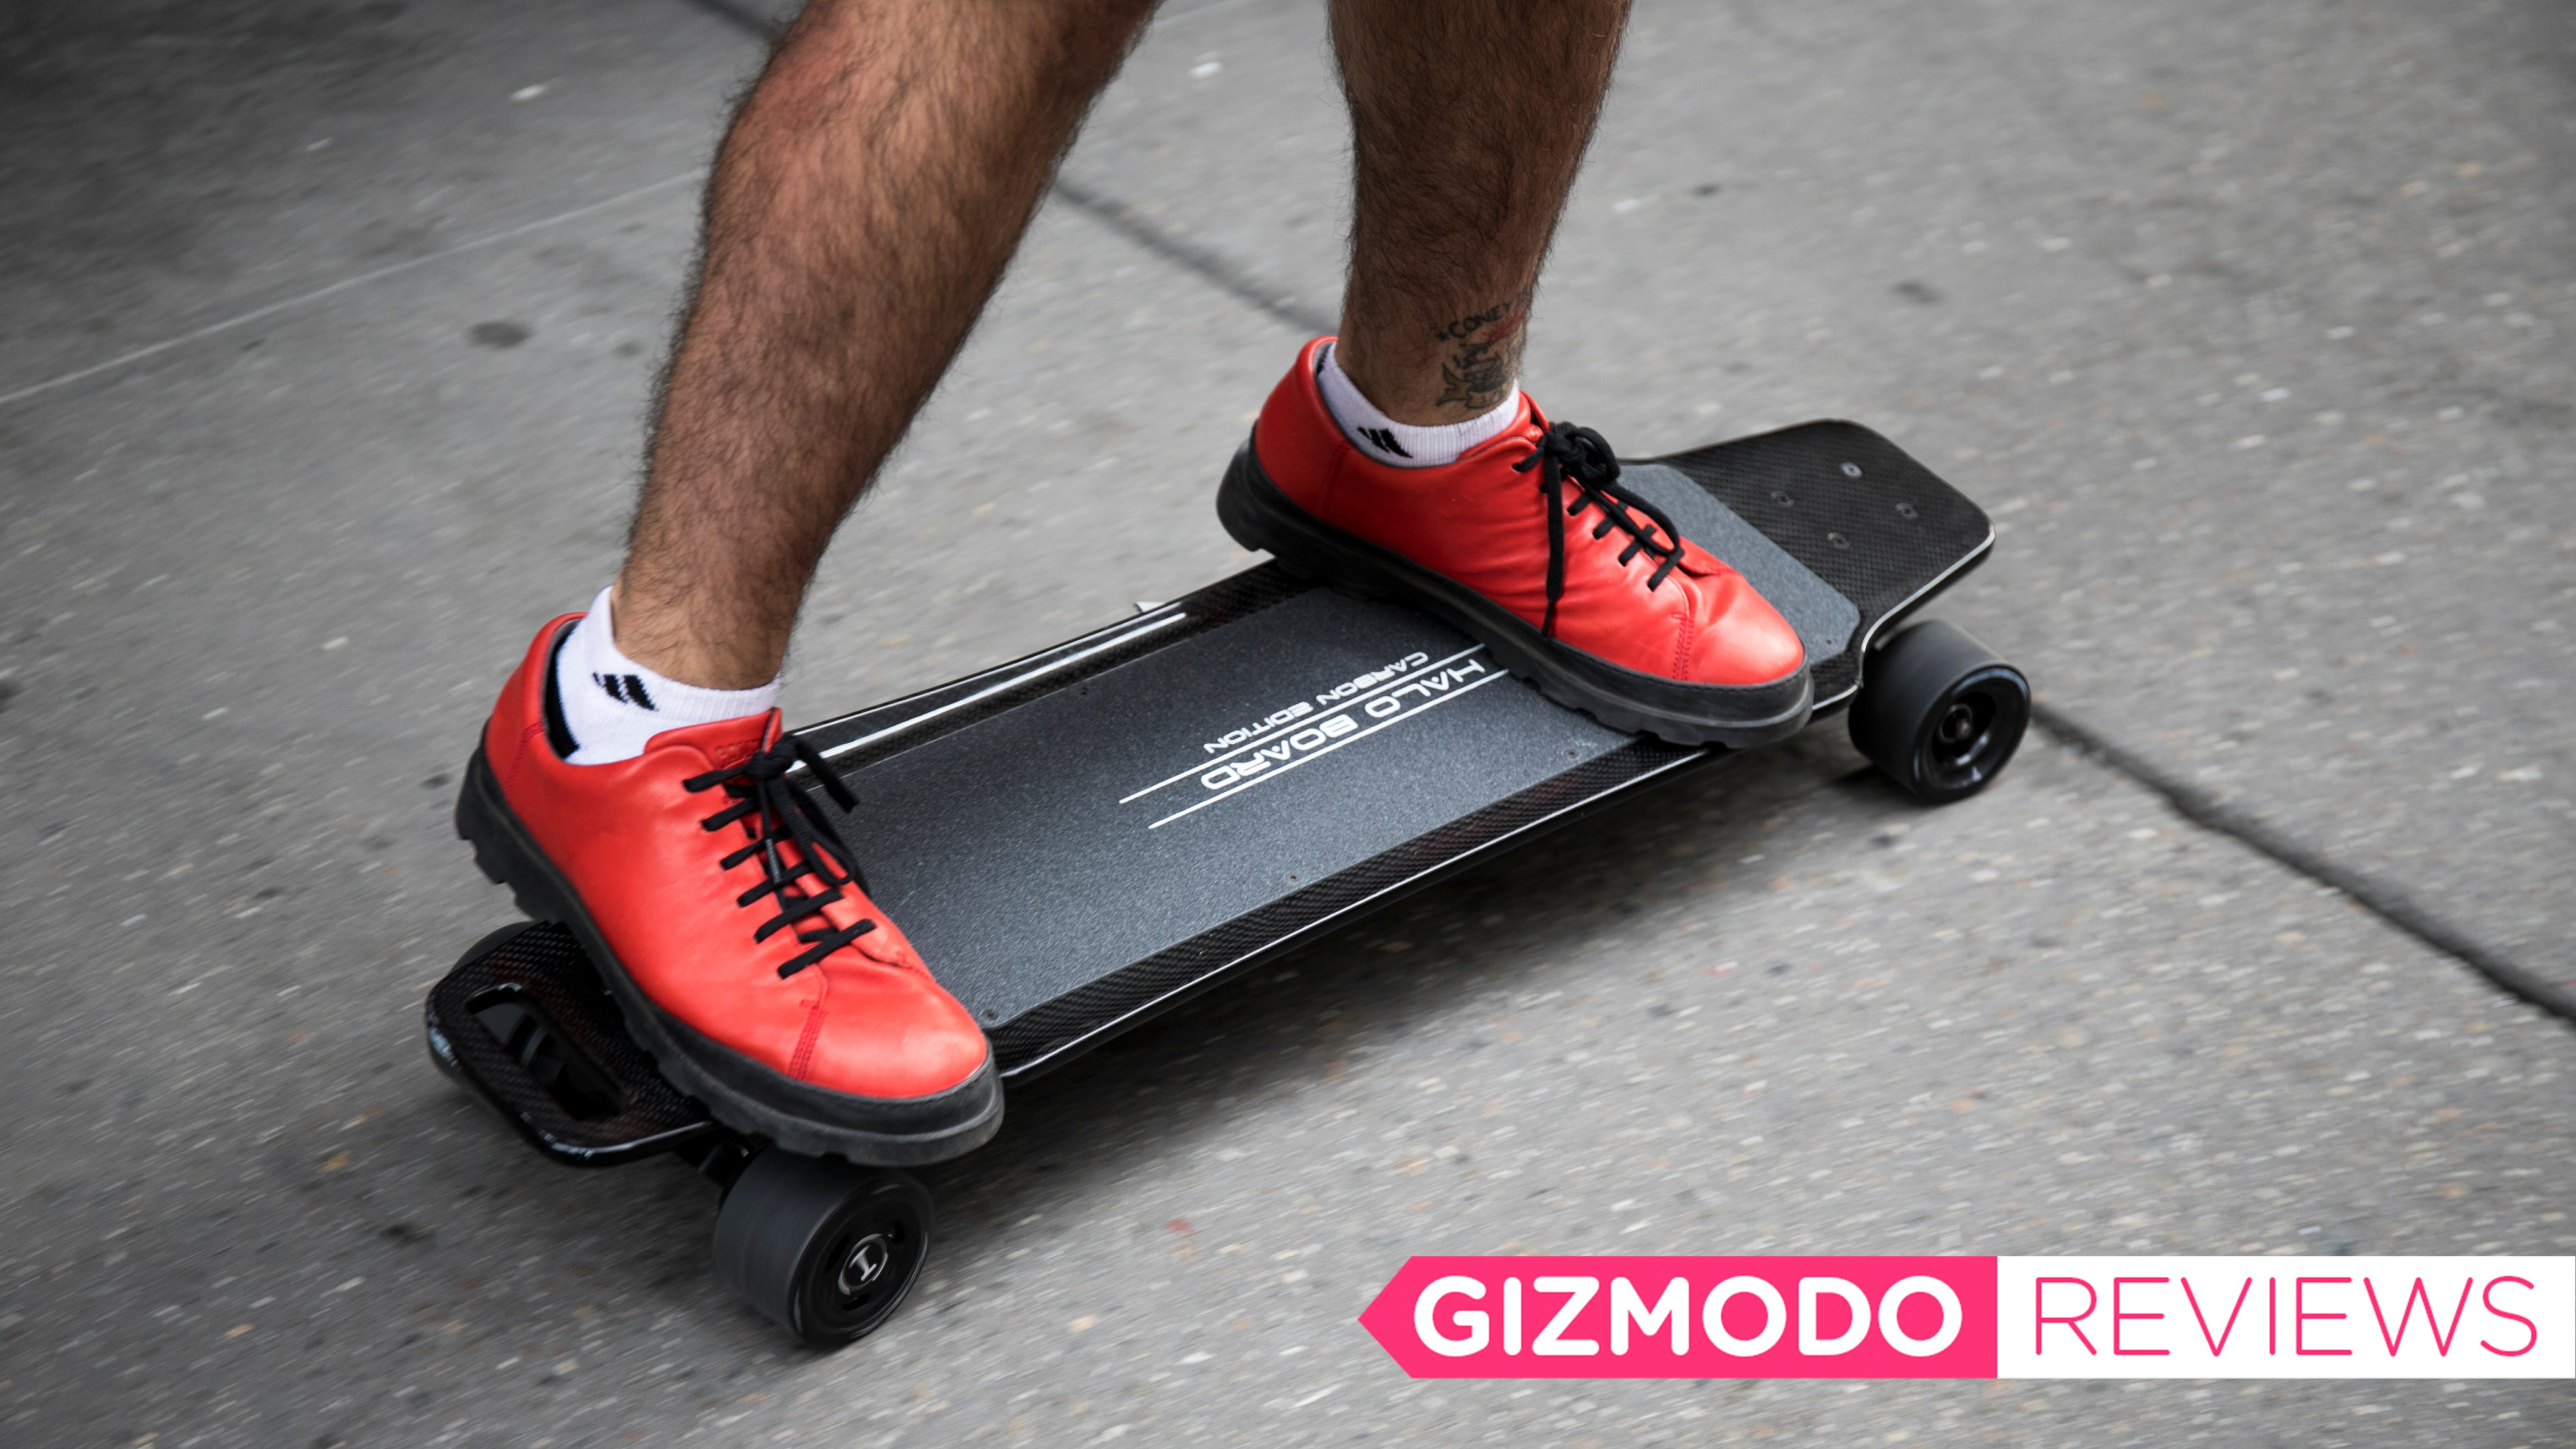 Halo Board Electric Skateboard: The Gizmodo Review